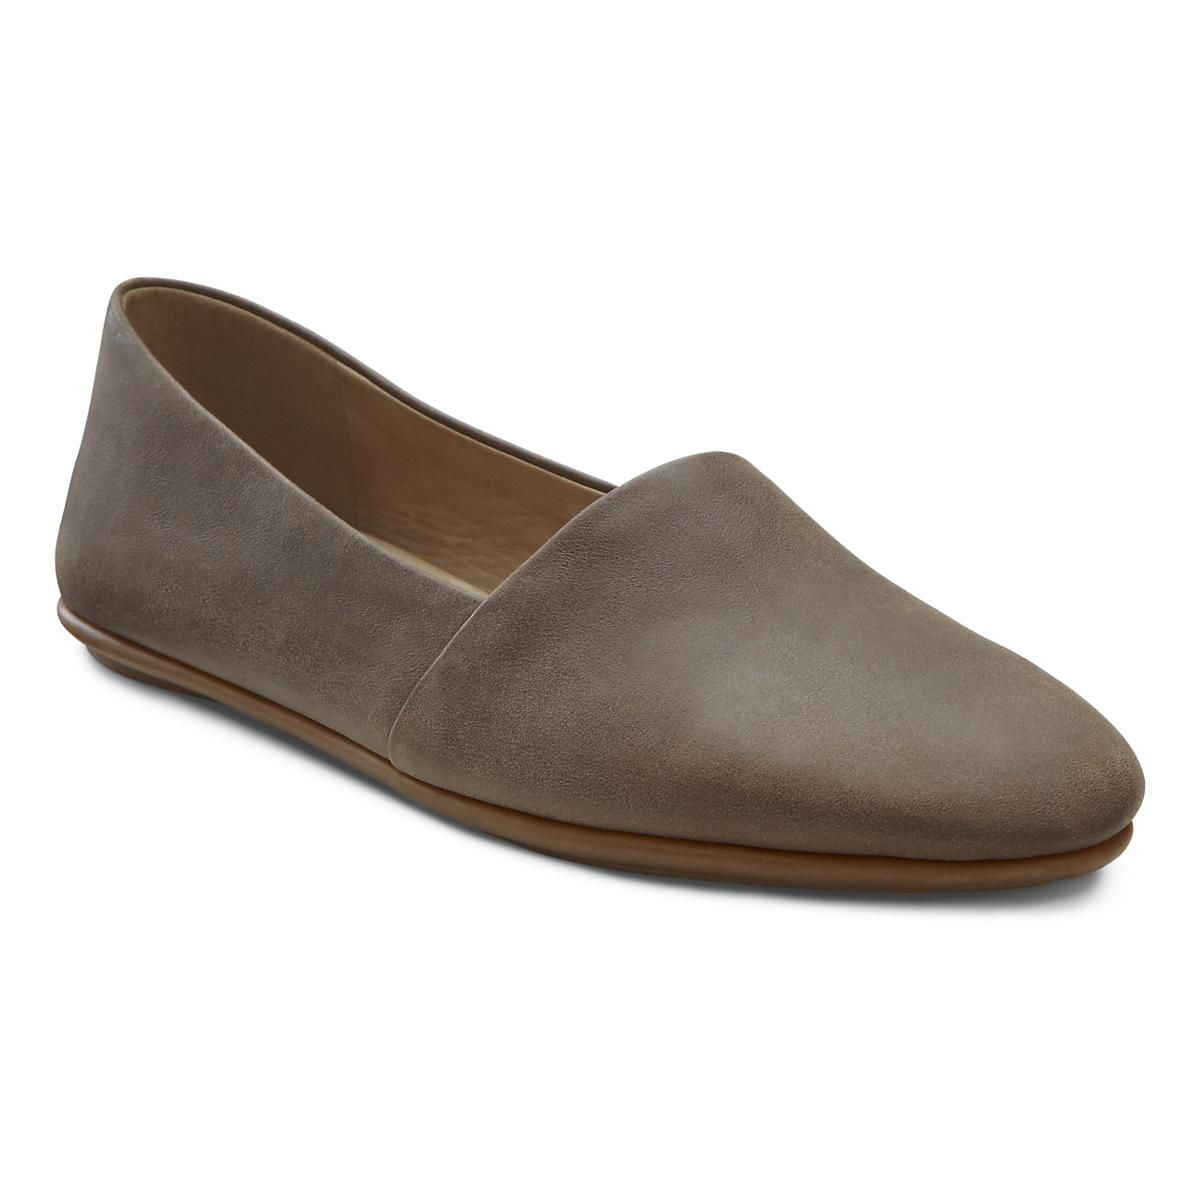 Osan Loafer Shoes, Loafers, Leather flats